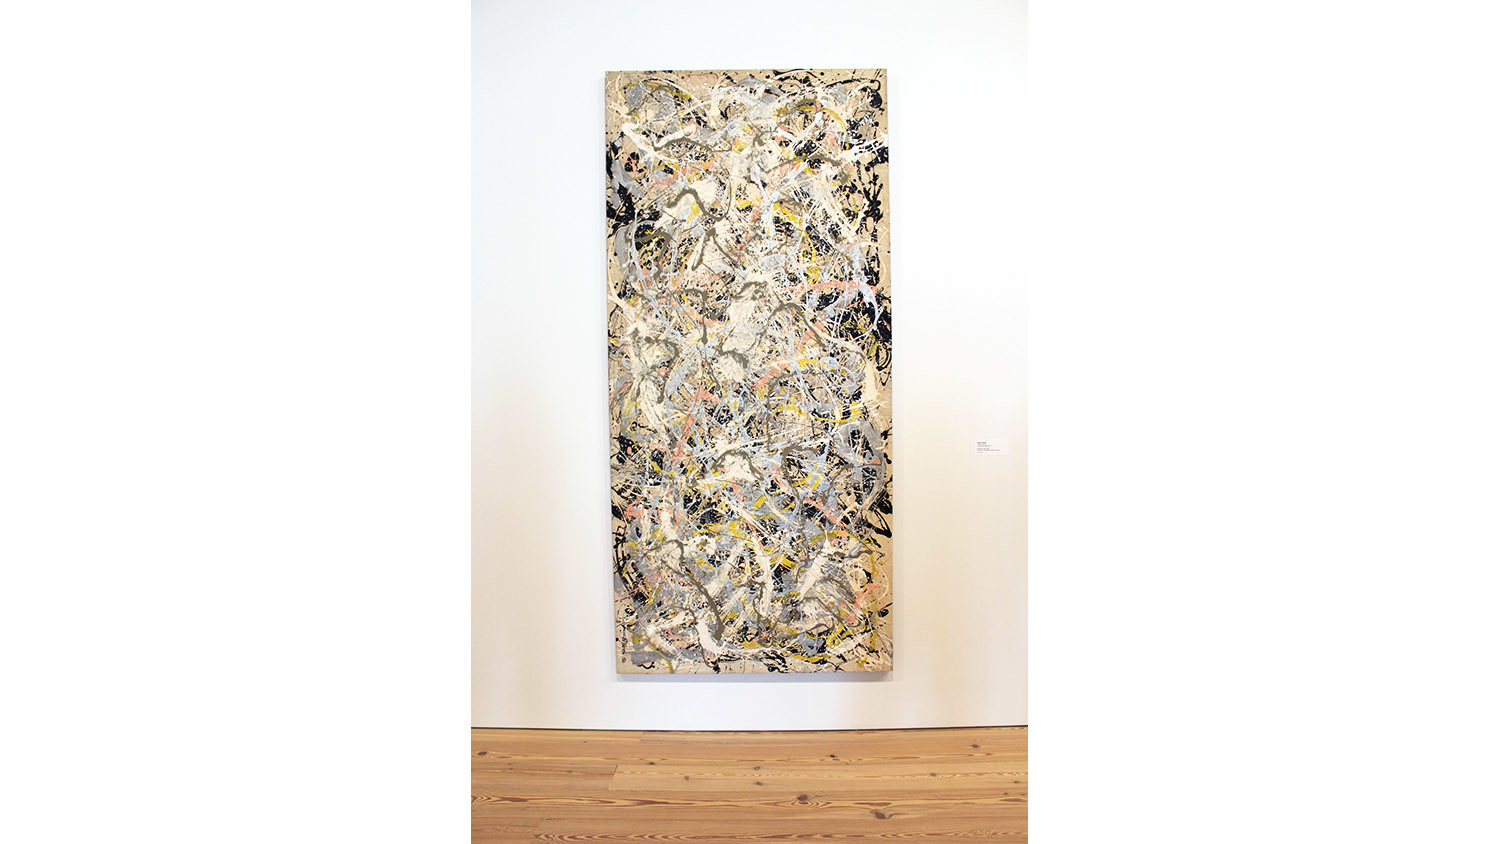 Whitney hangs Pollock sideways: Bonehead move or revisionist argument?